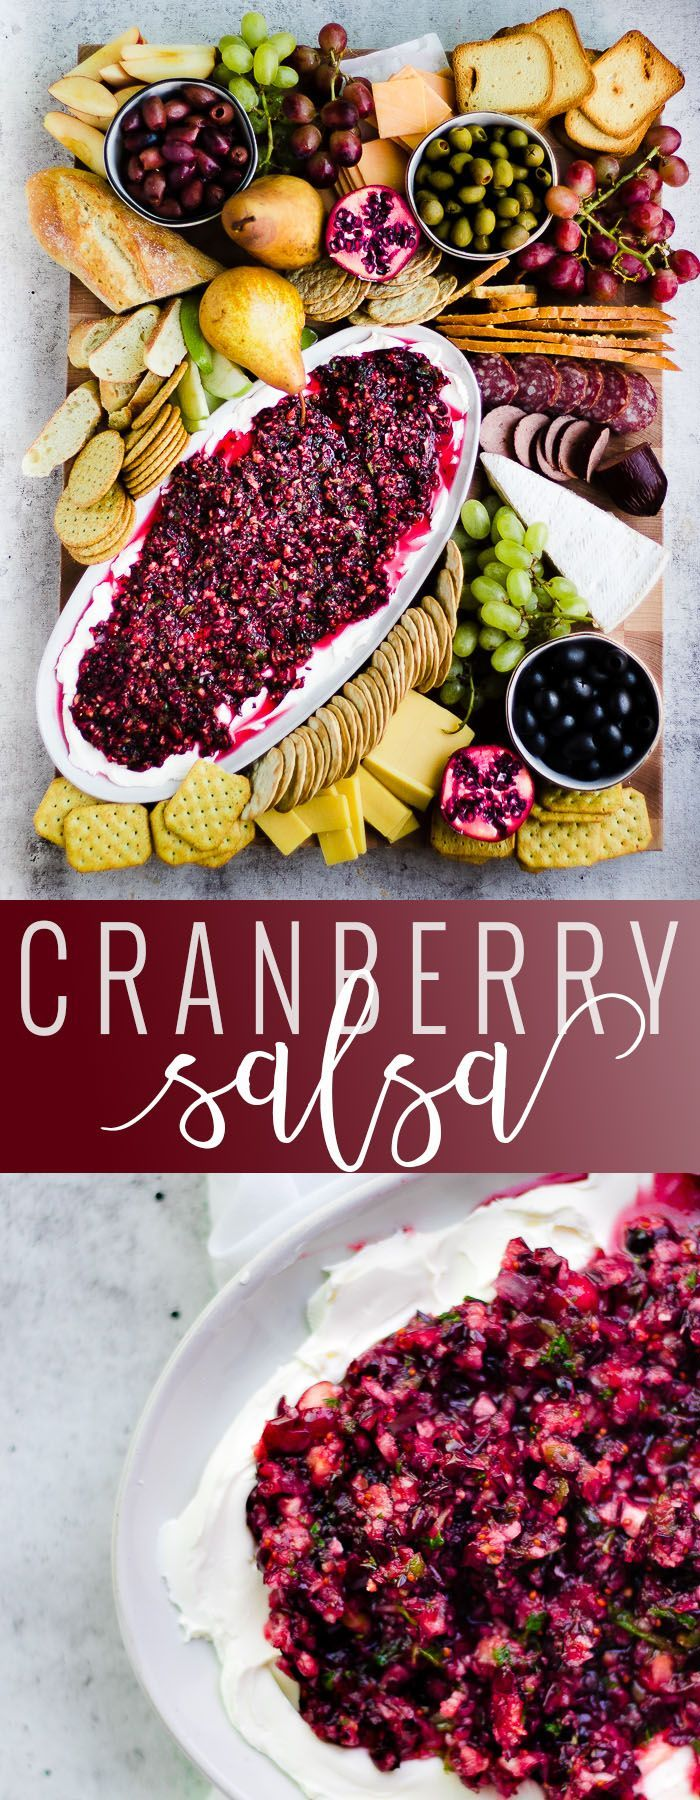 Cranberry Salsa | homemade cranberry recipes | fruit salsa | easy cranberry salsa | homemade salsa recipes | sweet salsa recipes | holiday appetizers || Oh So Delicioso #cranberrysalsa #fruitsalsa #sweetsalsa